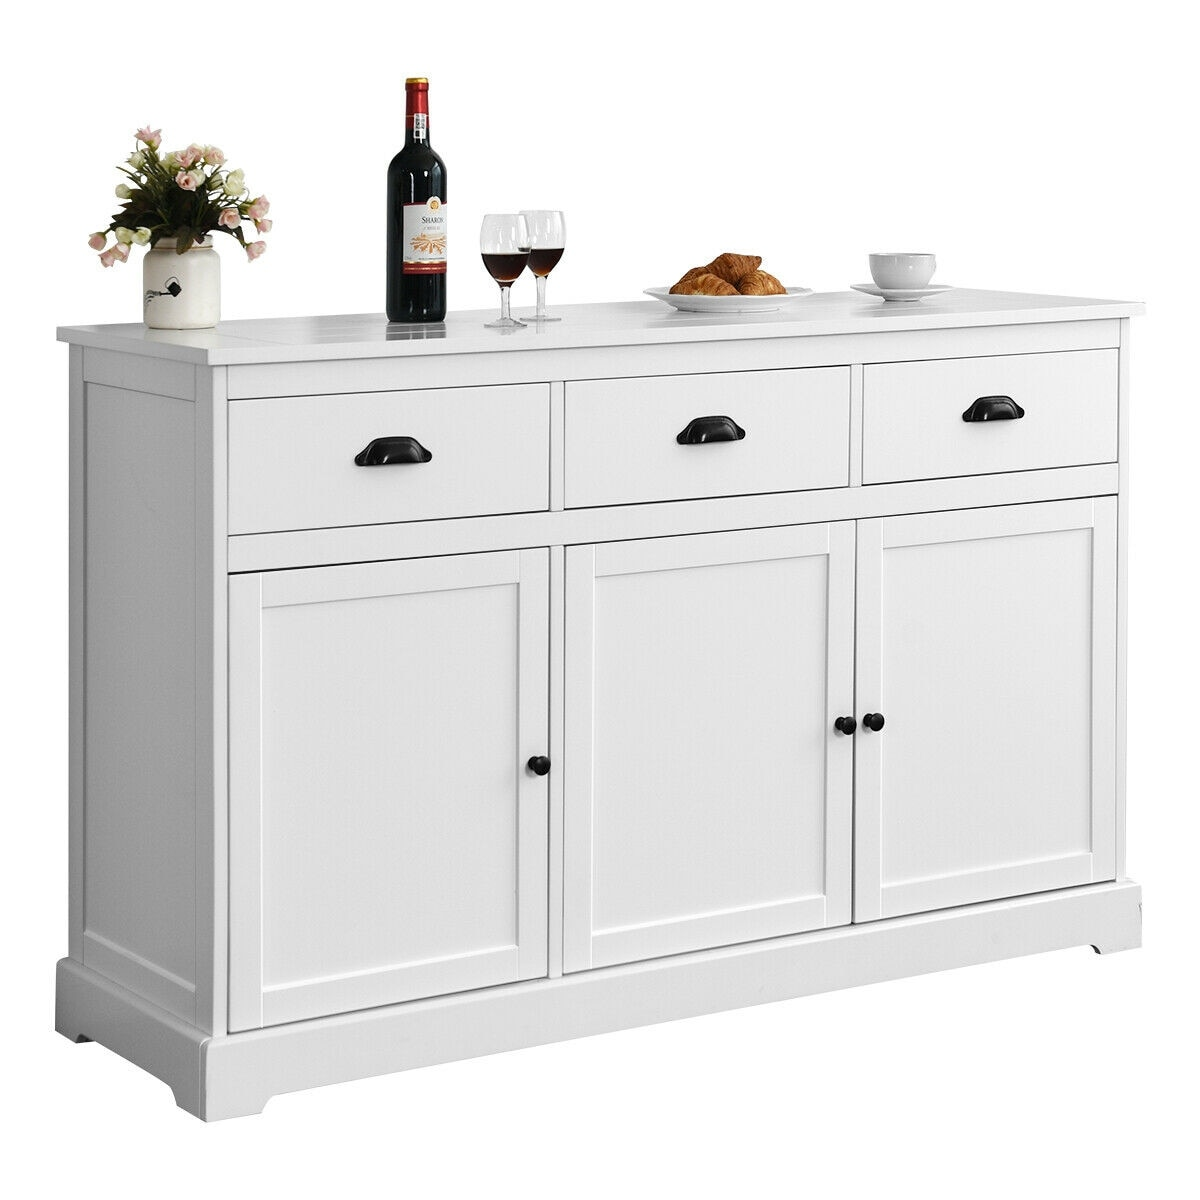 Gymax 3 Drawers Sideboard Buffet Cabinet Console Table Kitchen Storage Cupboard White